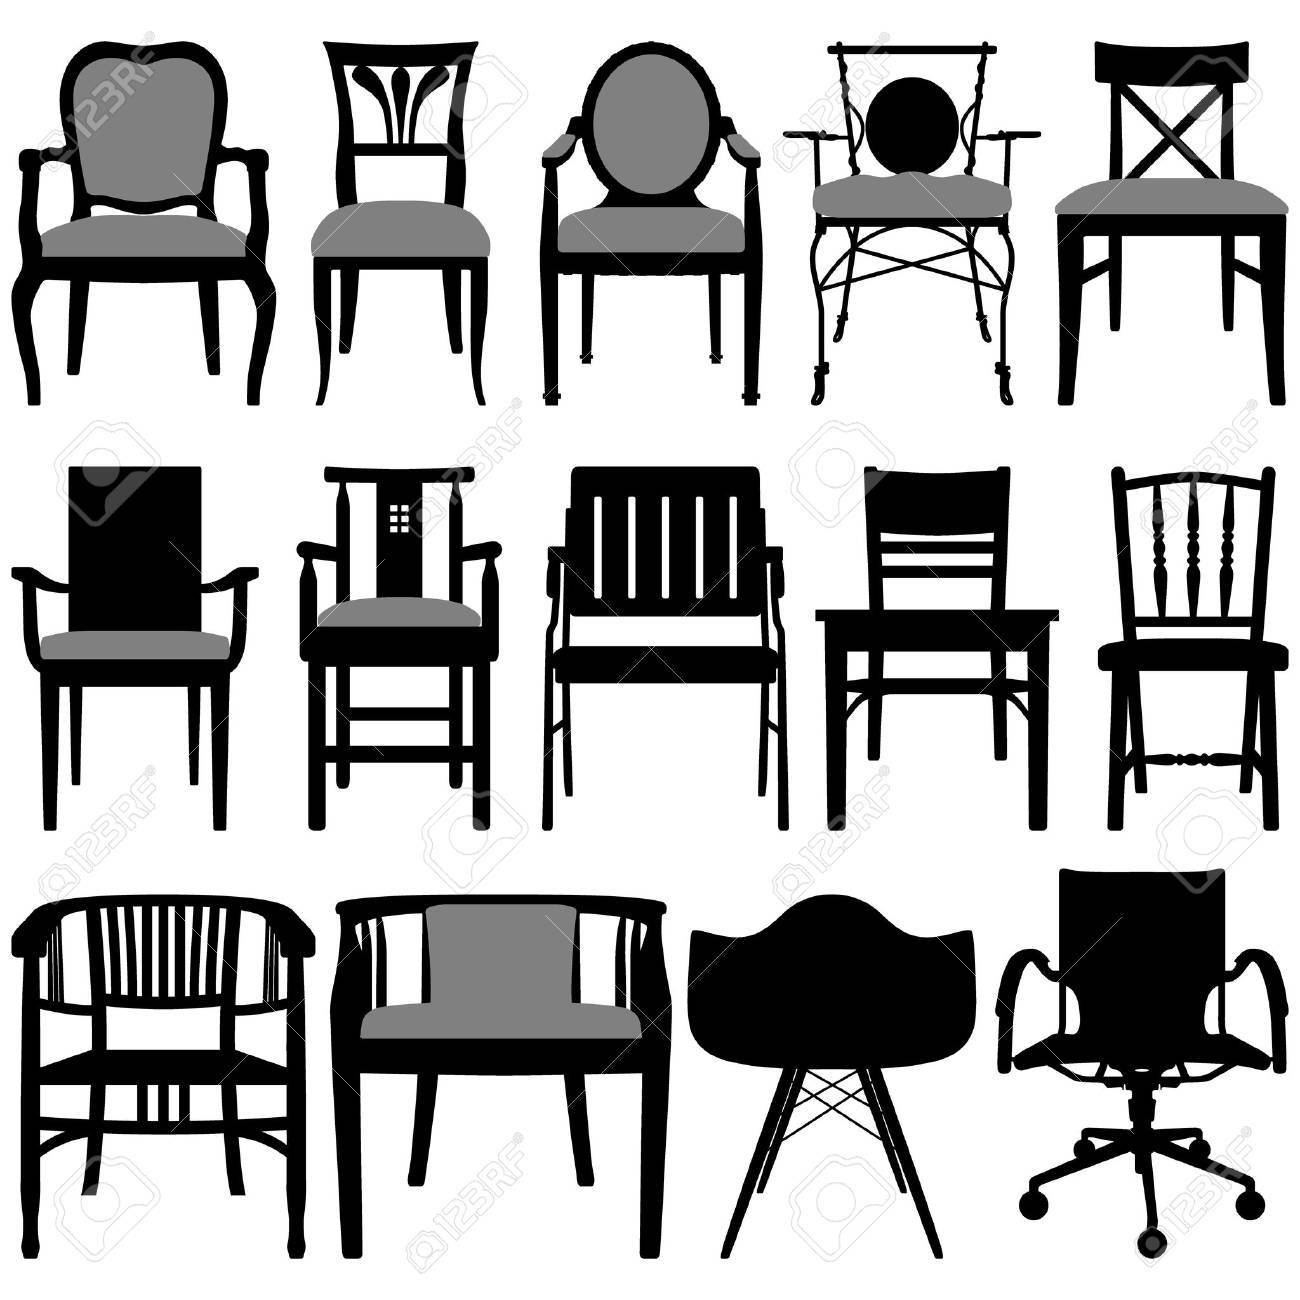 Antique chair silhouette - Chair Design Royalty Free Cliparts Vectors And Stock